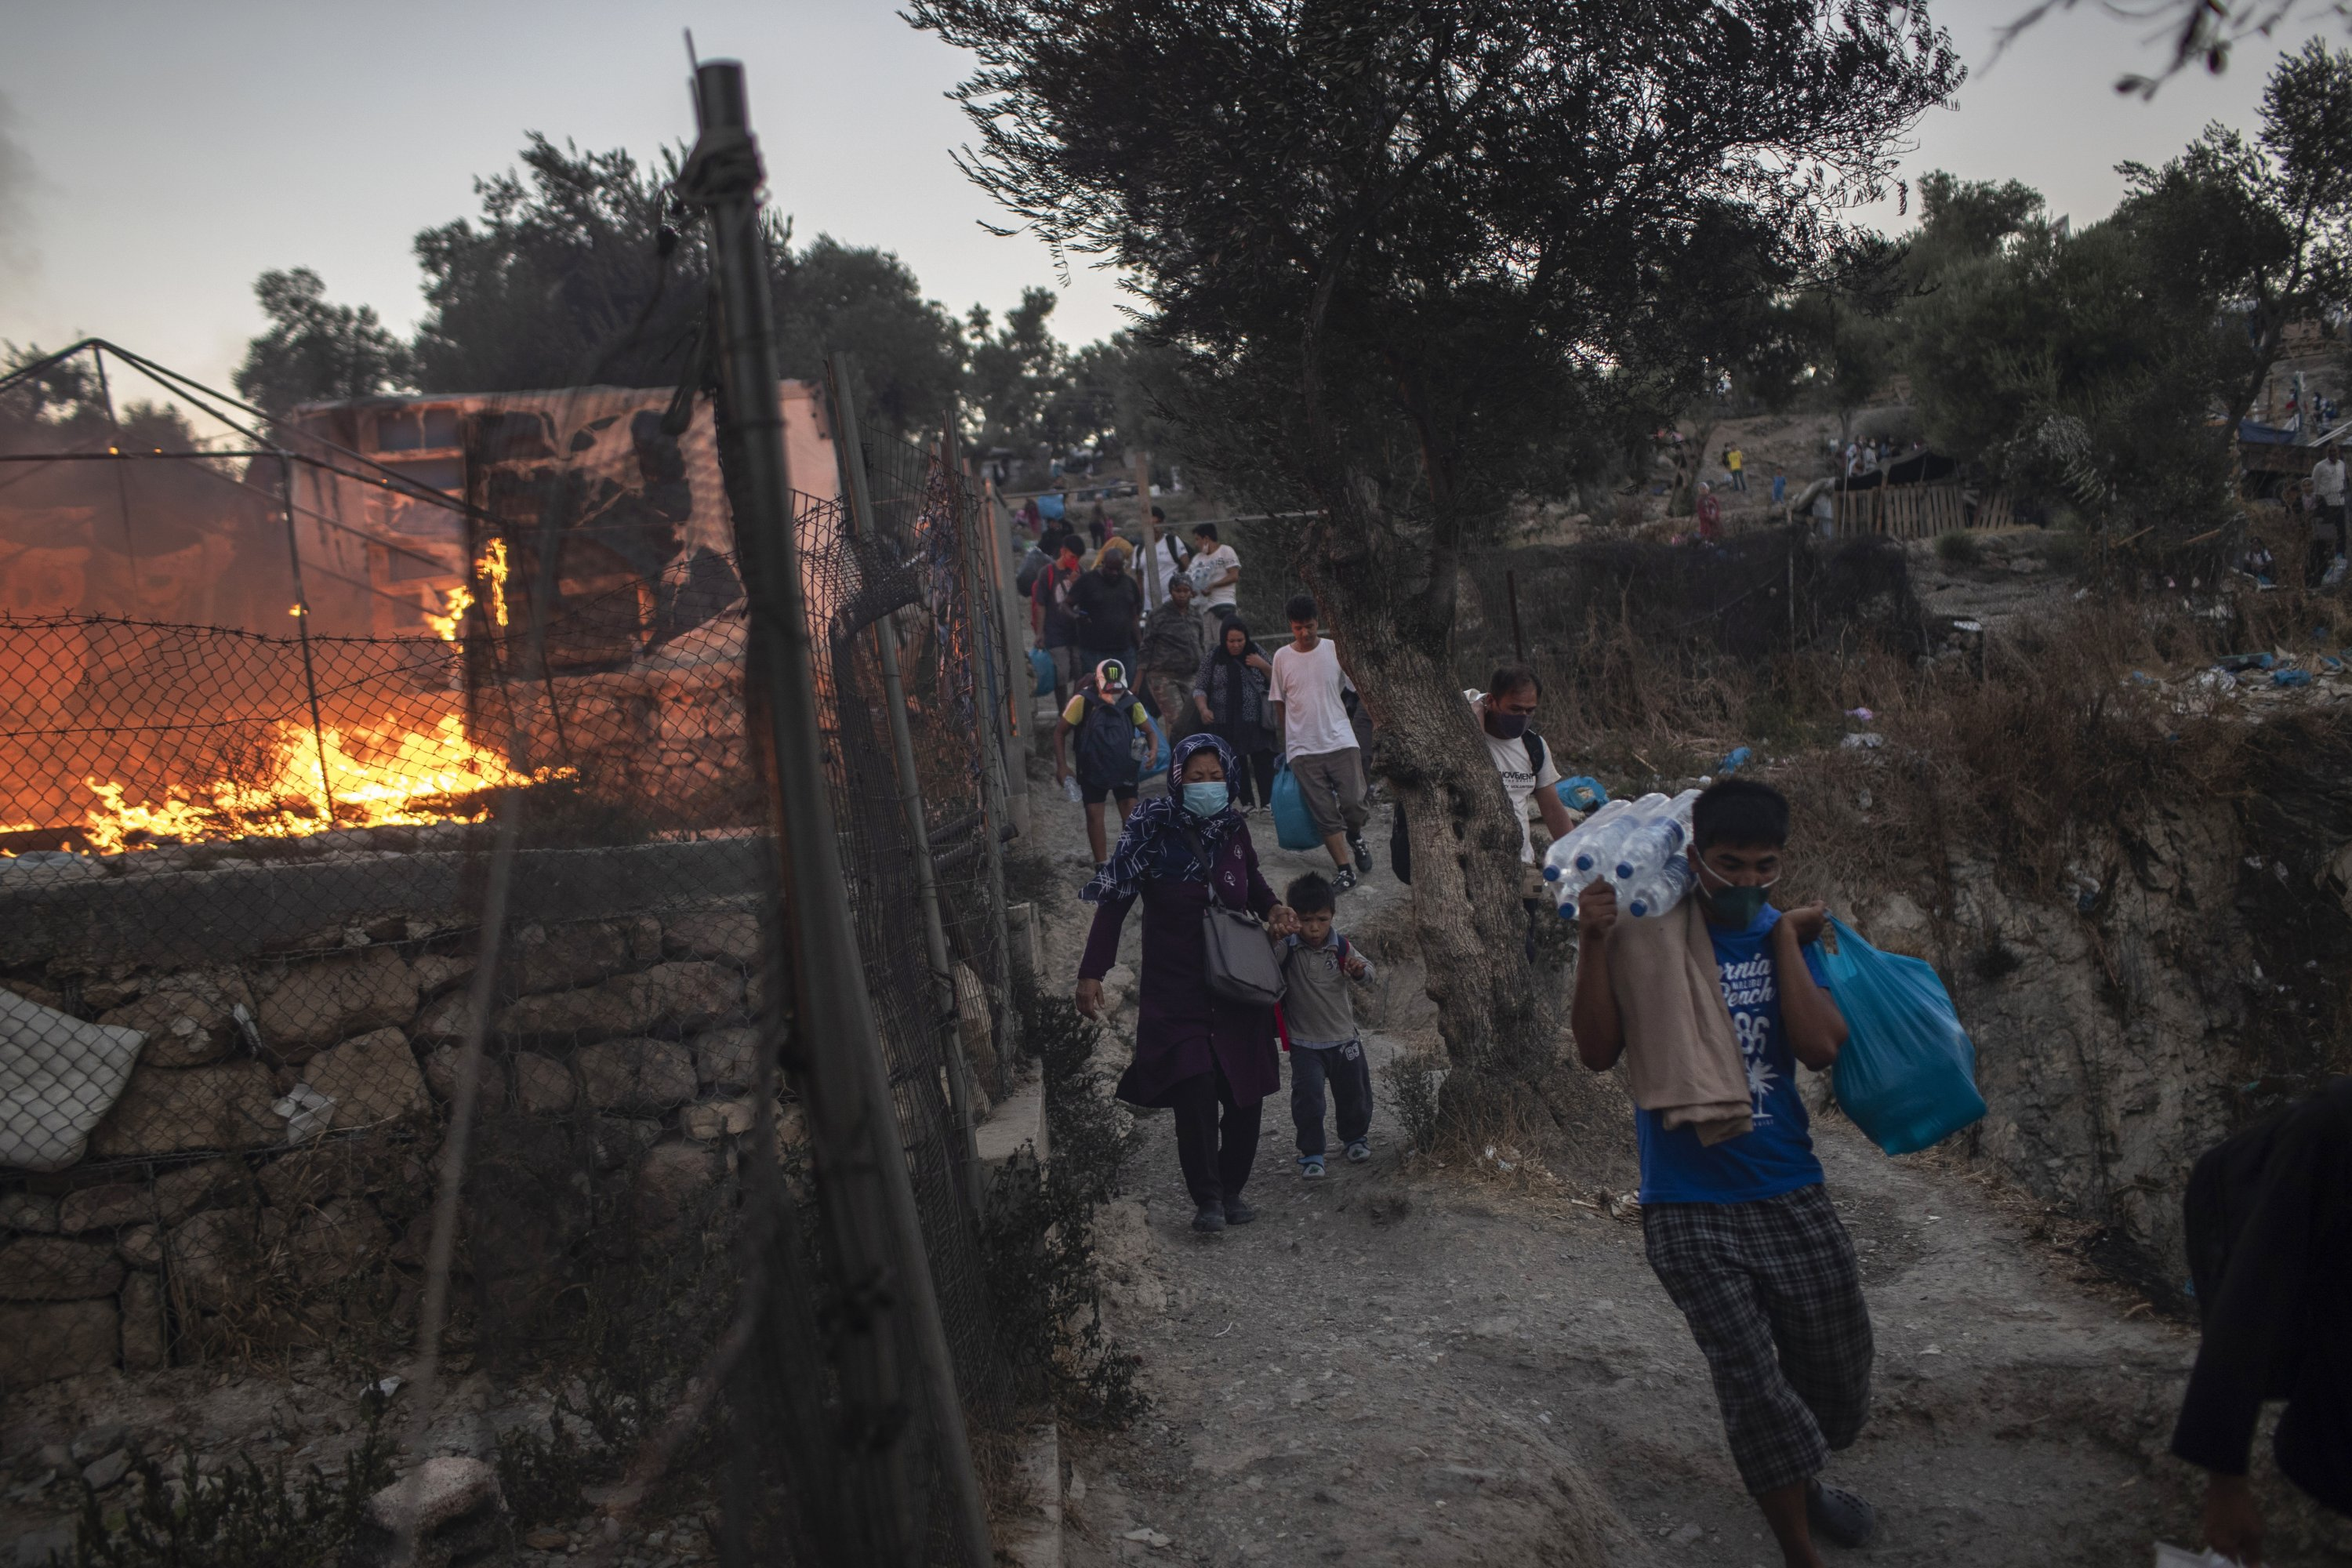 Refugees and migrants carrying their belongings flee a fire burning at Moria camp, on Lesbos island, Greece, Sept. 9, 2020. (AP Photo)